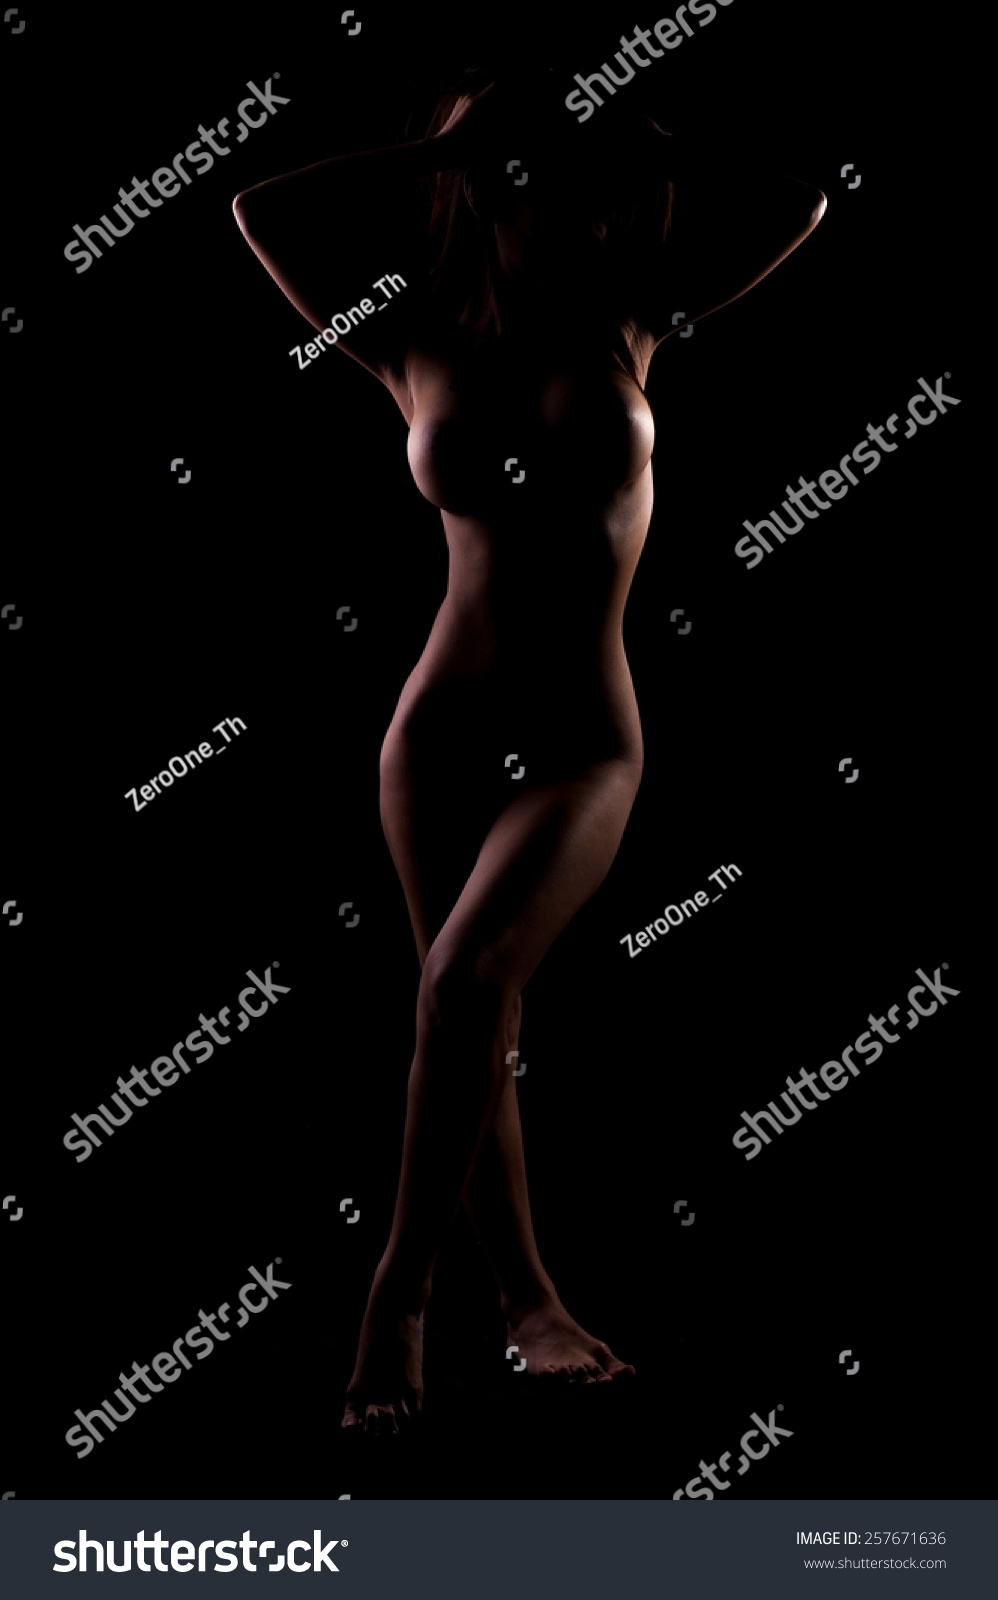 Asian Nude Fitness Woman Sexy Erotic Stock Photo 257671636 ...